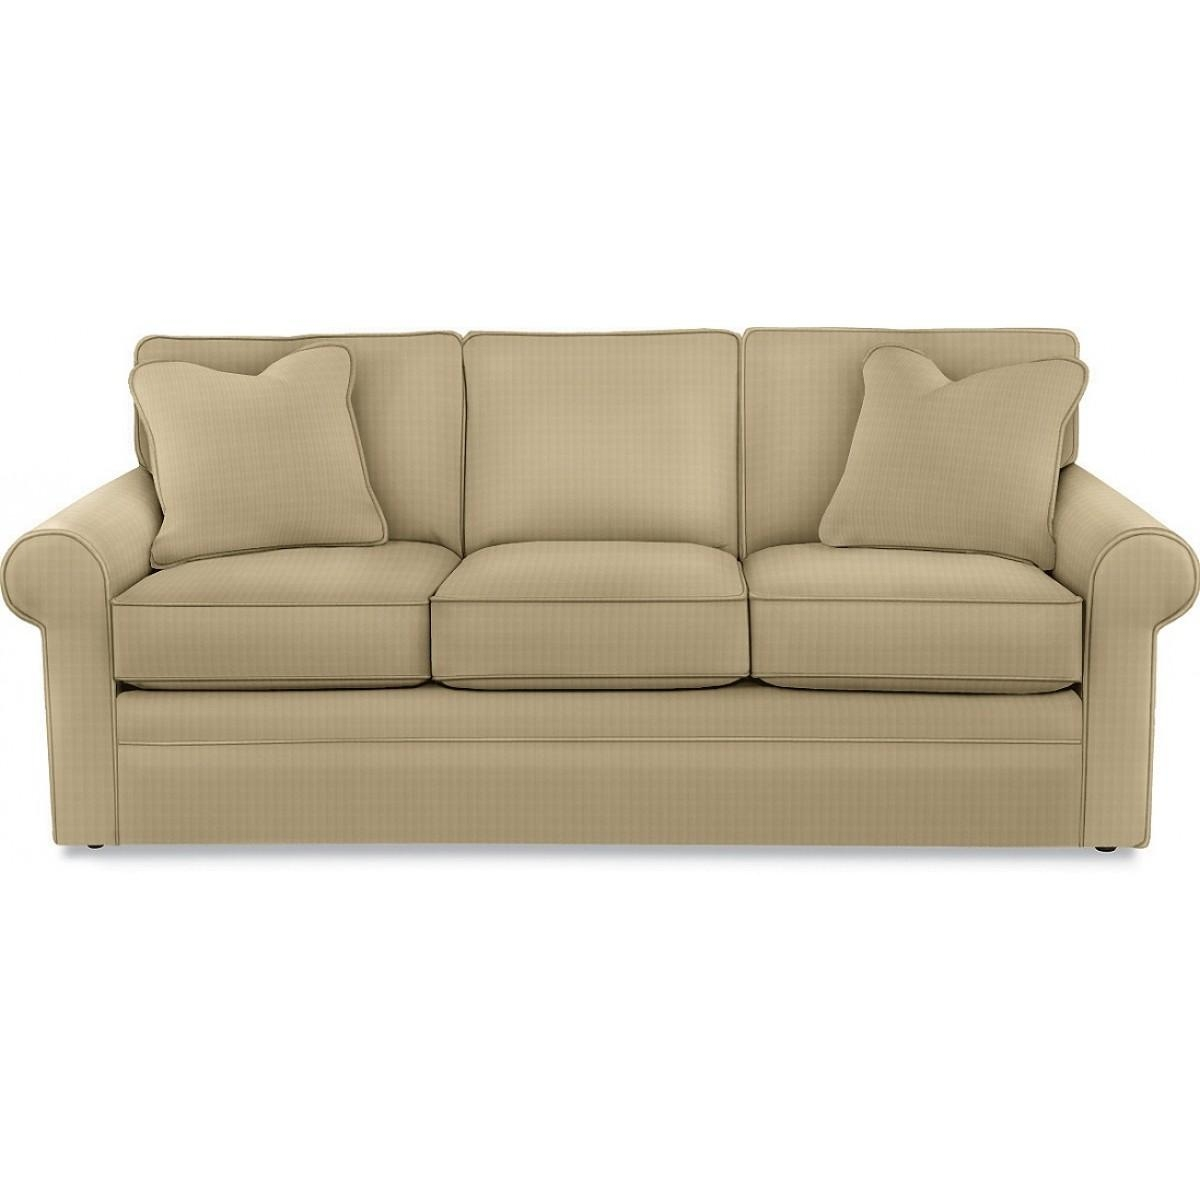 Collins Premier Sofa Style Number: 494 With Regard To Collins Sofas (Image 4 of 20)